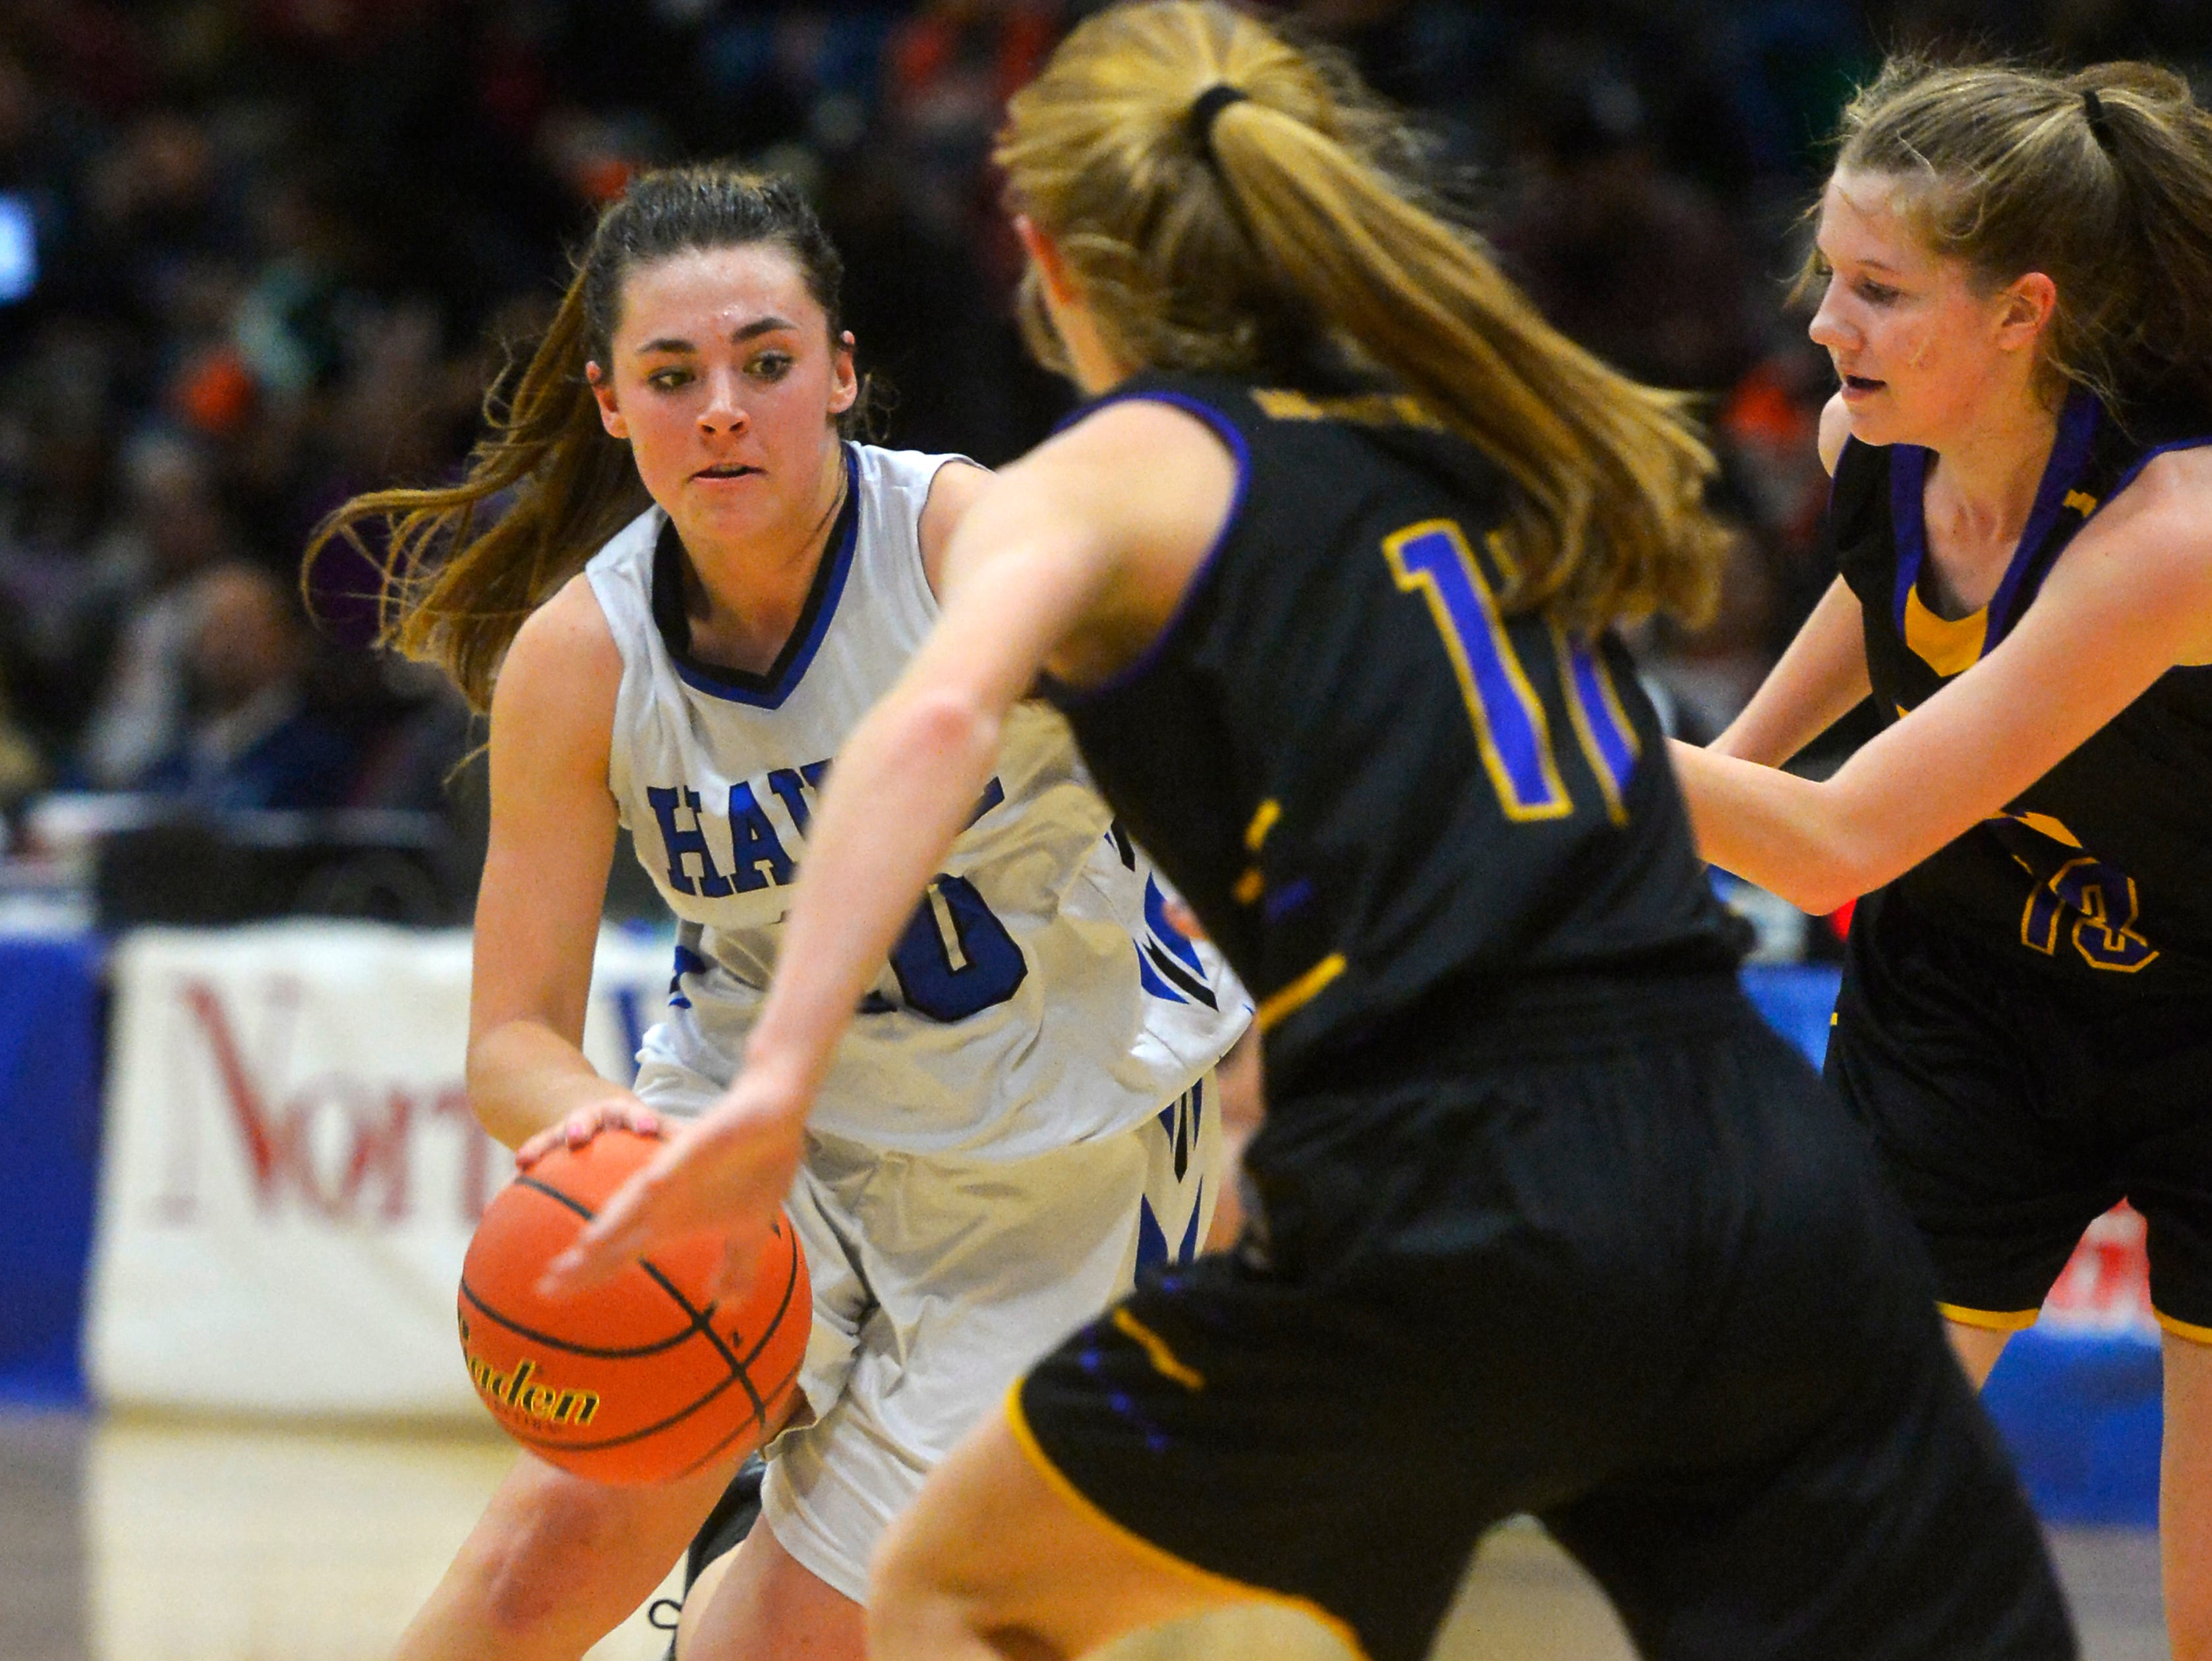 Havre's Kyndall Keller drives to the basket in the semifinal game against Laurel during the State Class A Basketball Tournament in the Four Seasons Arena, Friday.